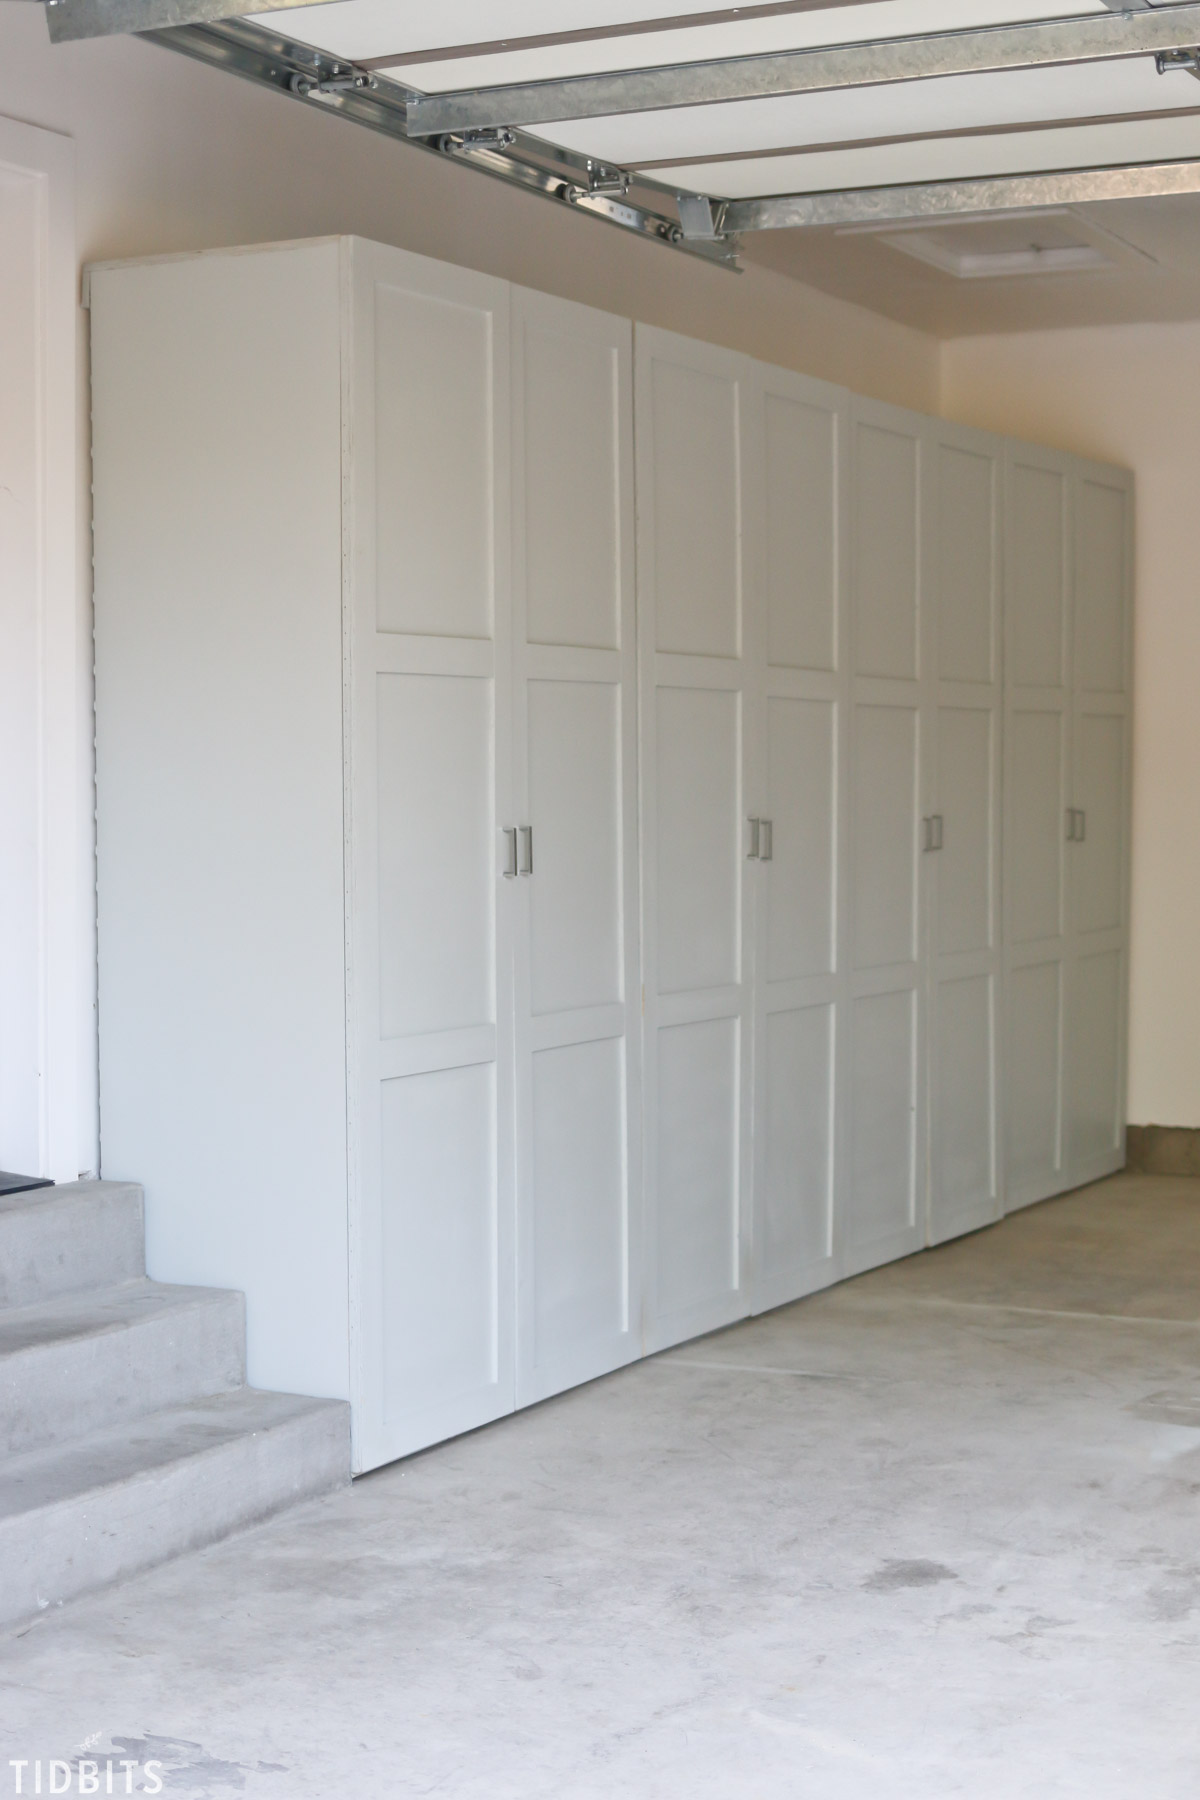 Garage Storage Cabinets  Free Building Plans  Tidbits